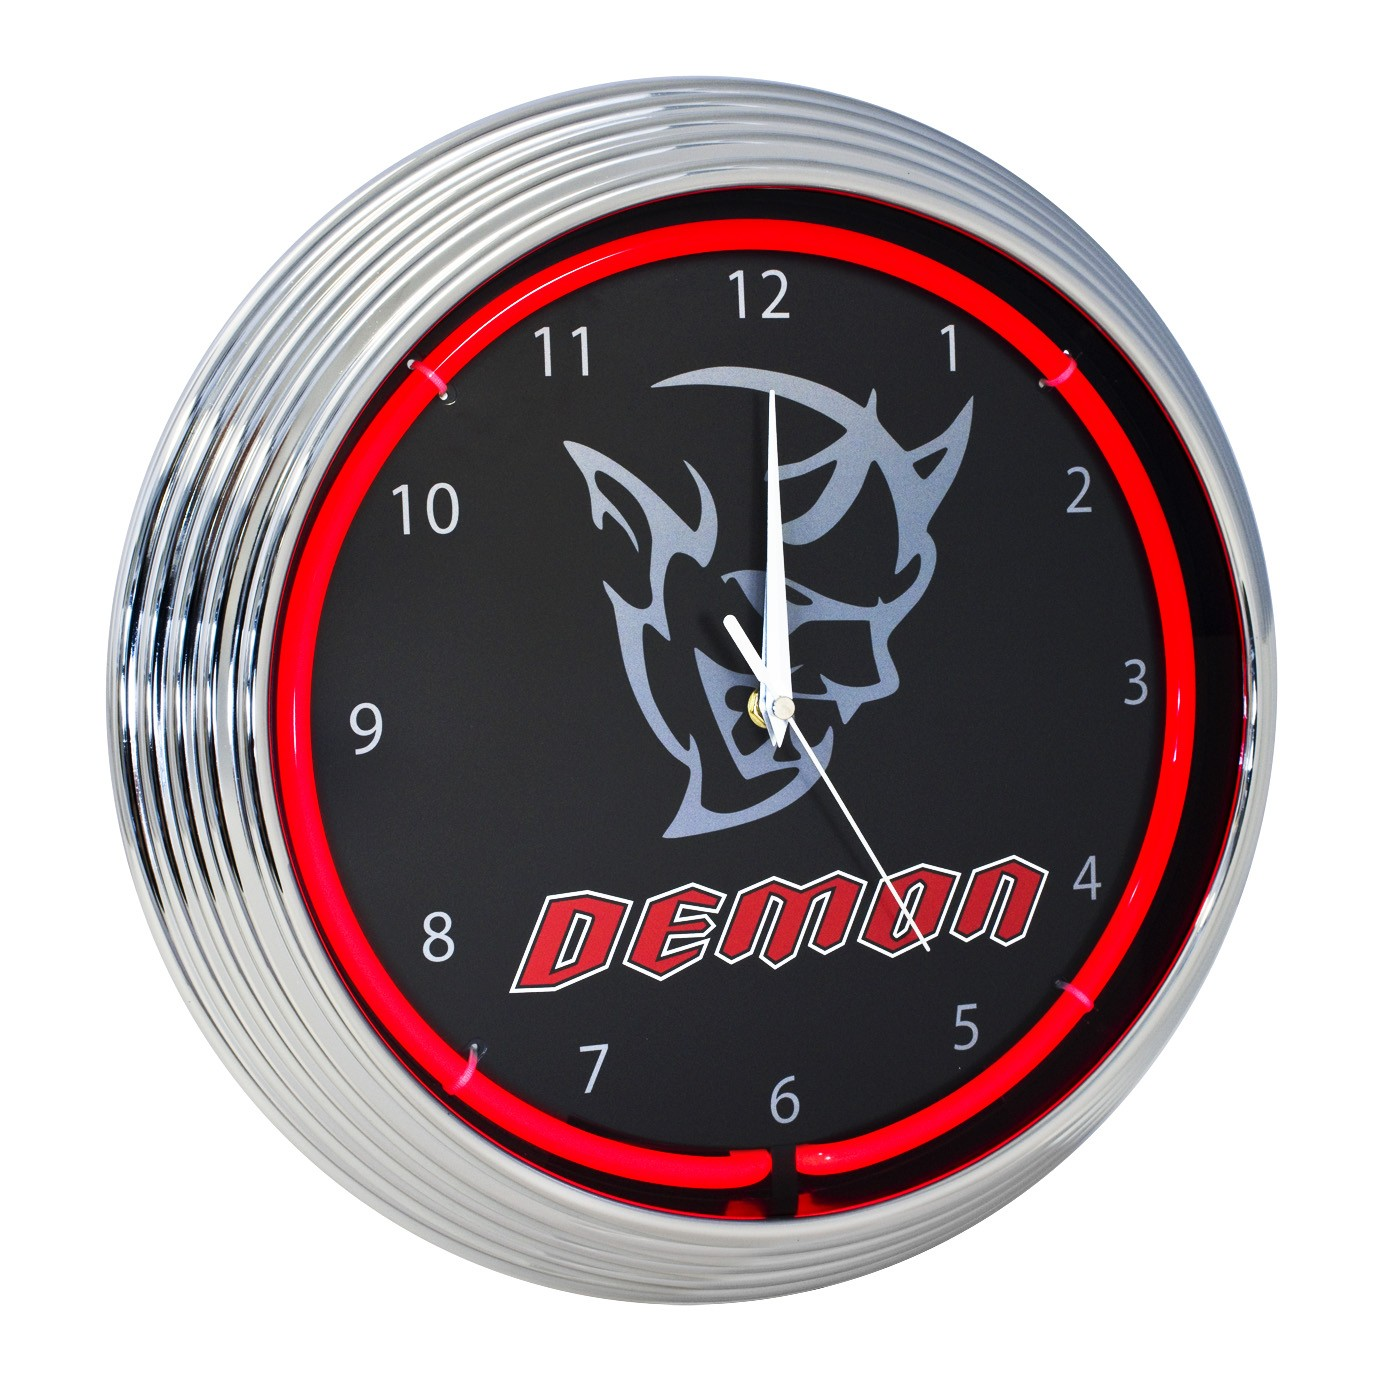 Challenger Demon SRT Clock Red Neon Illuminated Lighted - Black & Chrome Trim